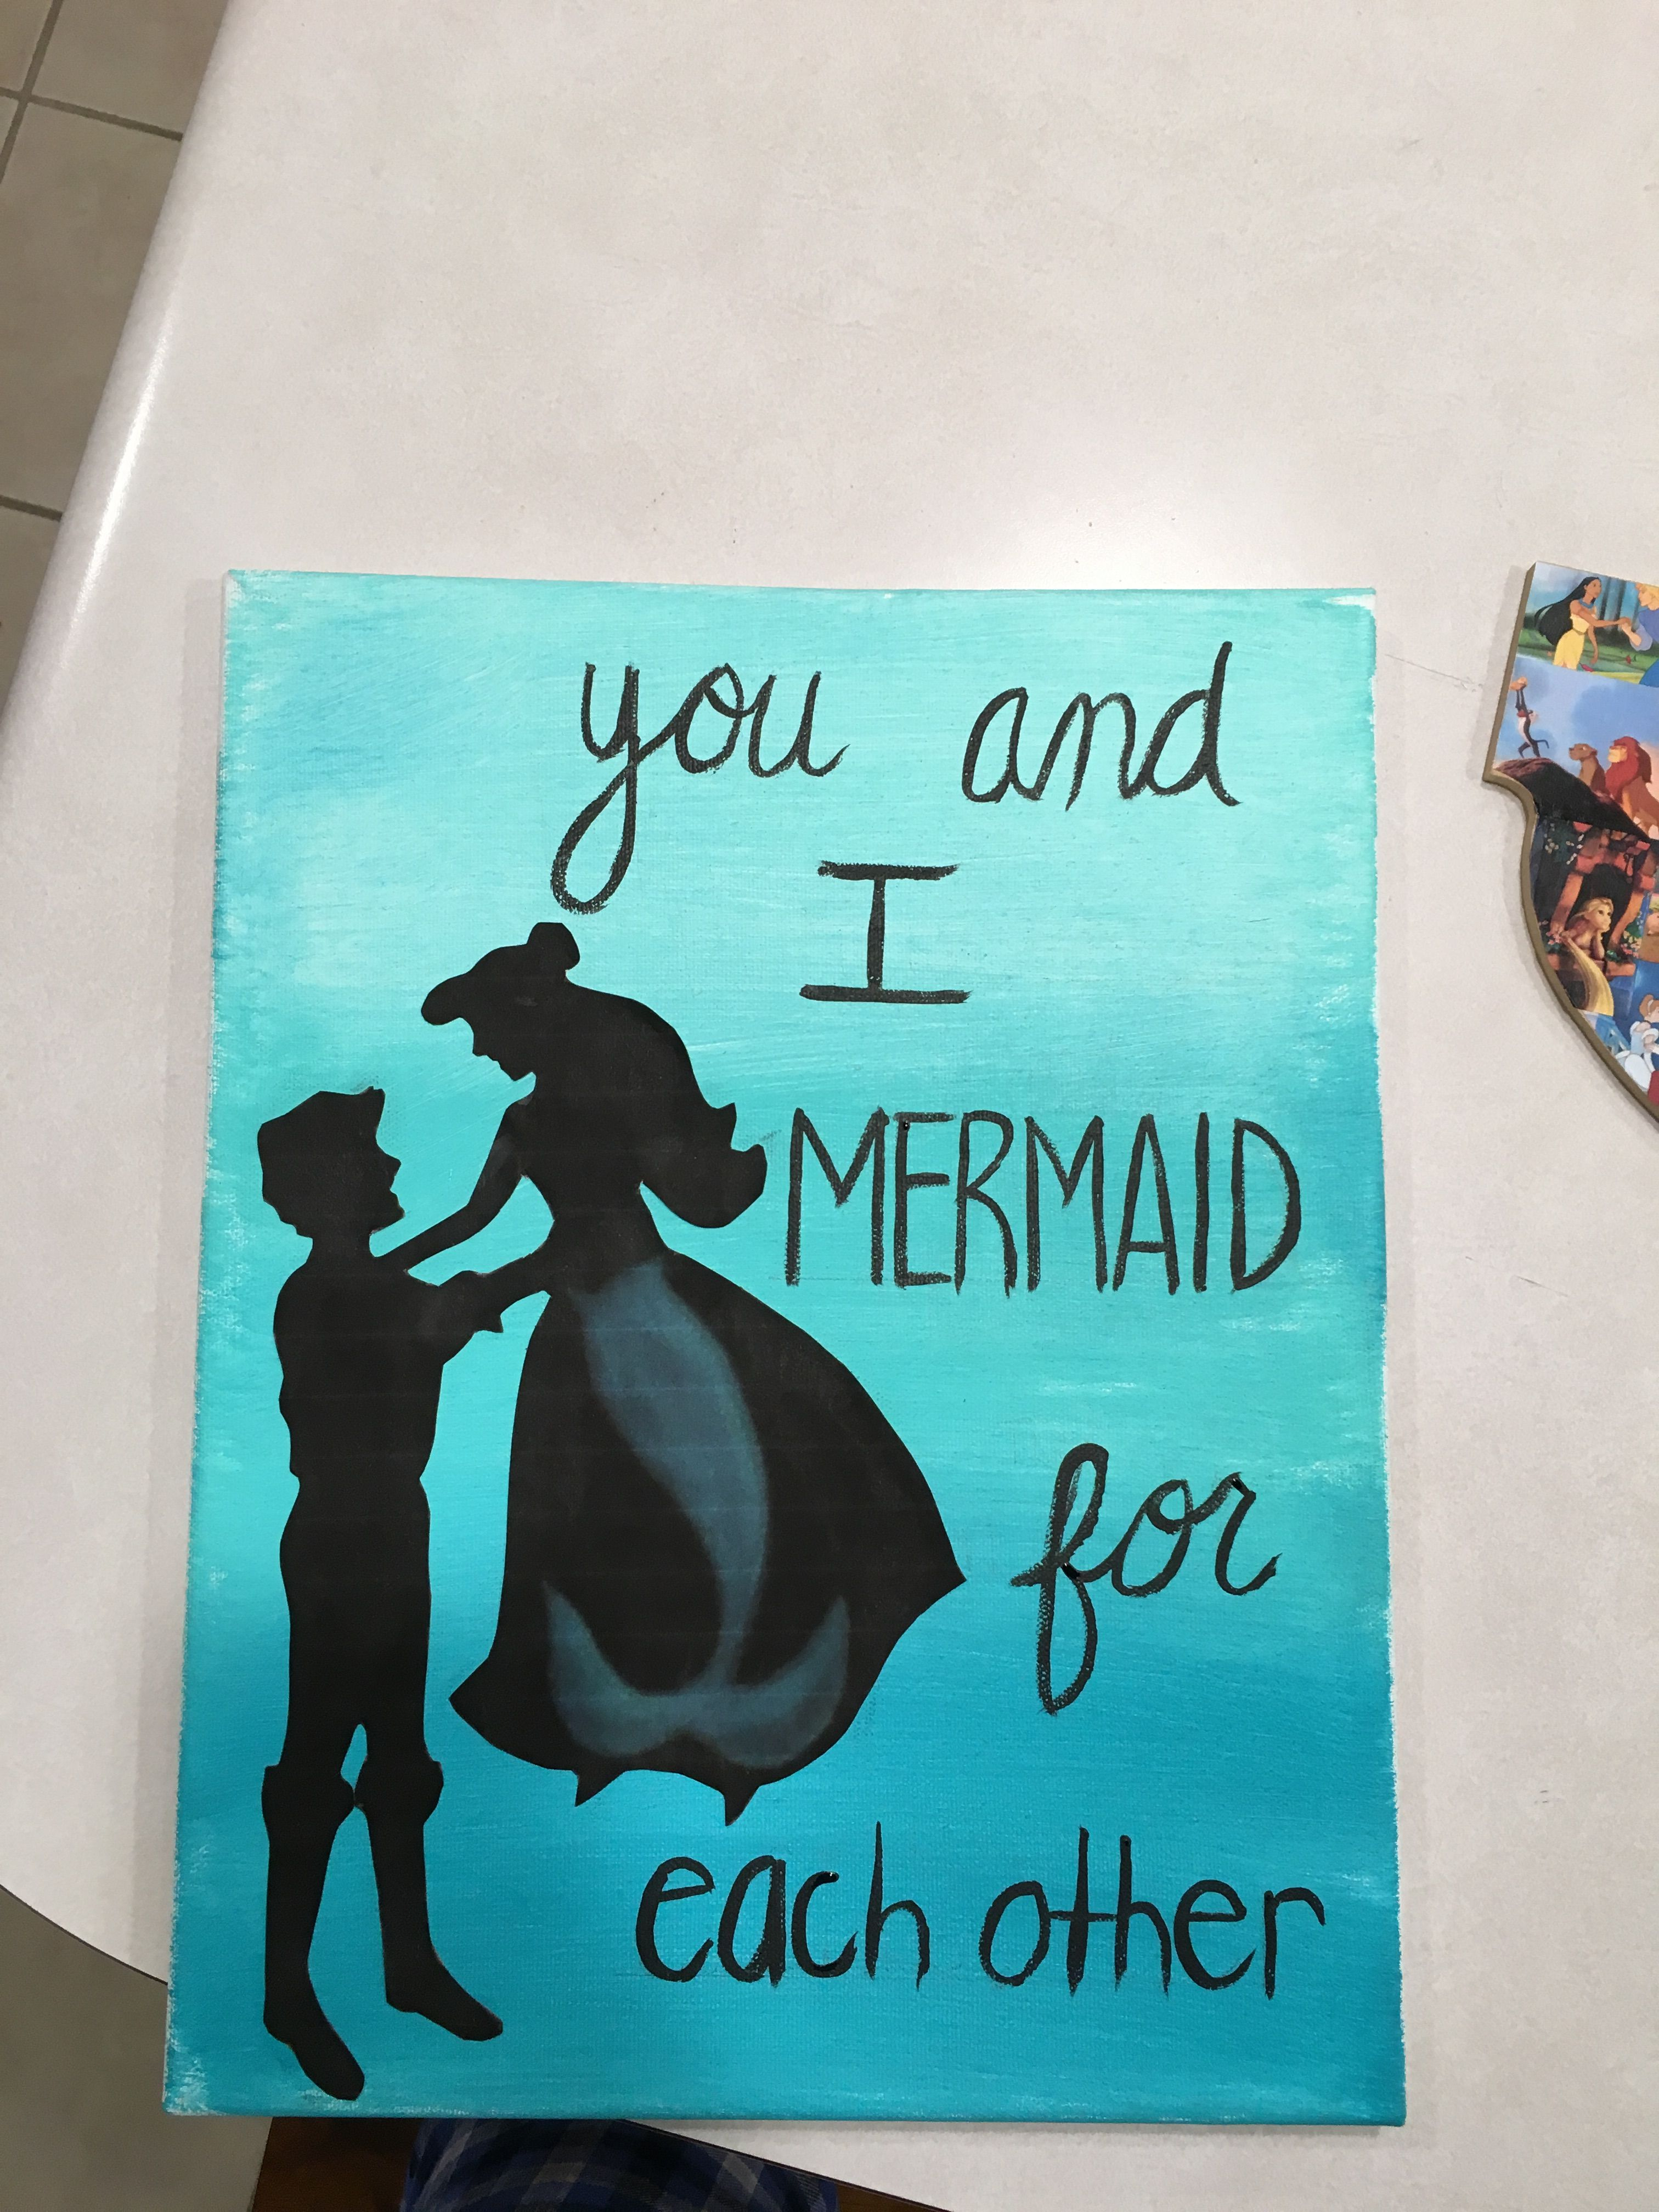 Cute disney canvas in reference to the little mermaid